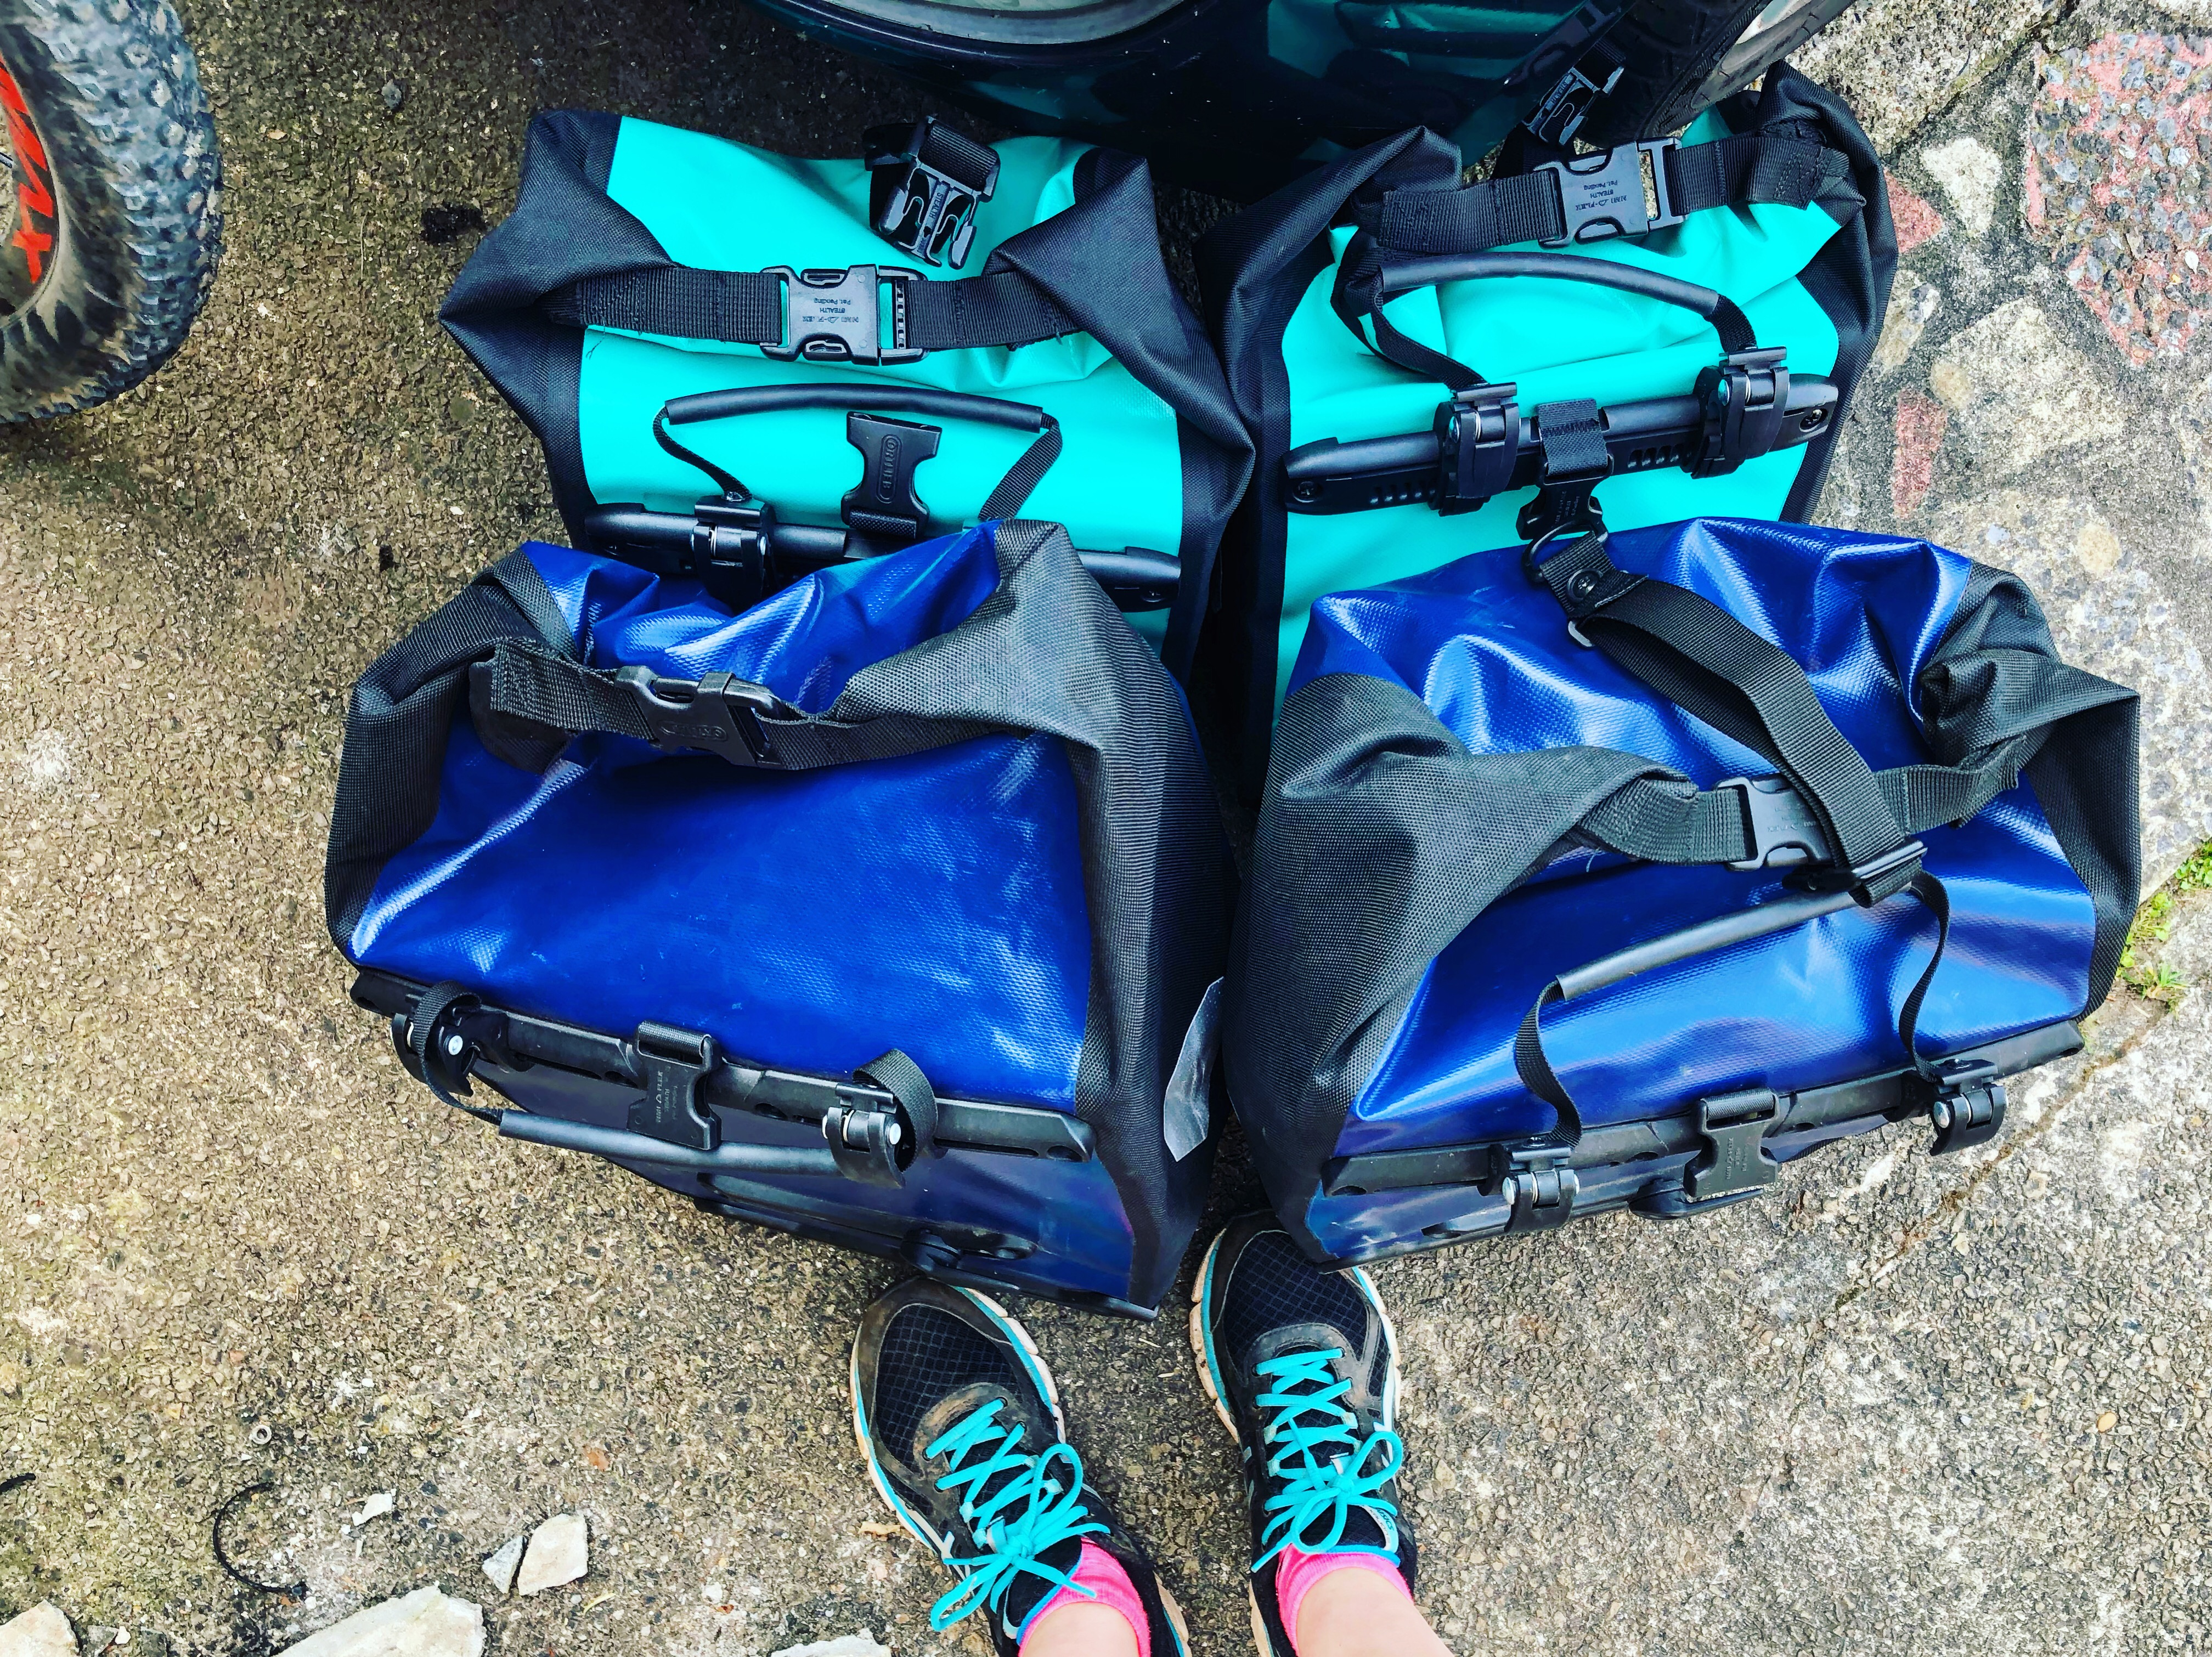 Cardiff Cyclist Nutrition and Dietetics Cardiff Met cycling to brecon Ortlieb bike pannier bags blue